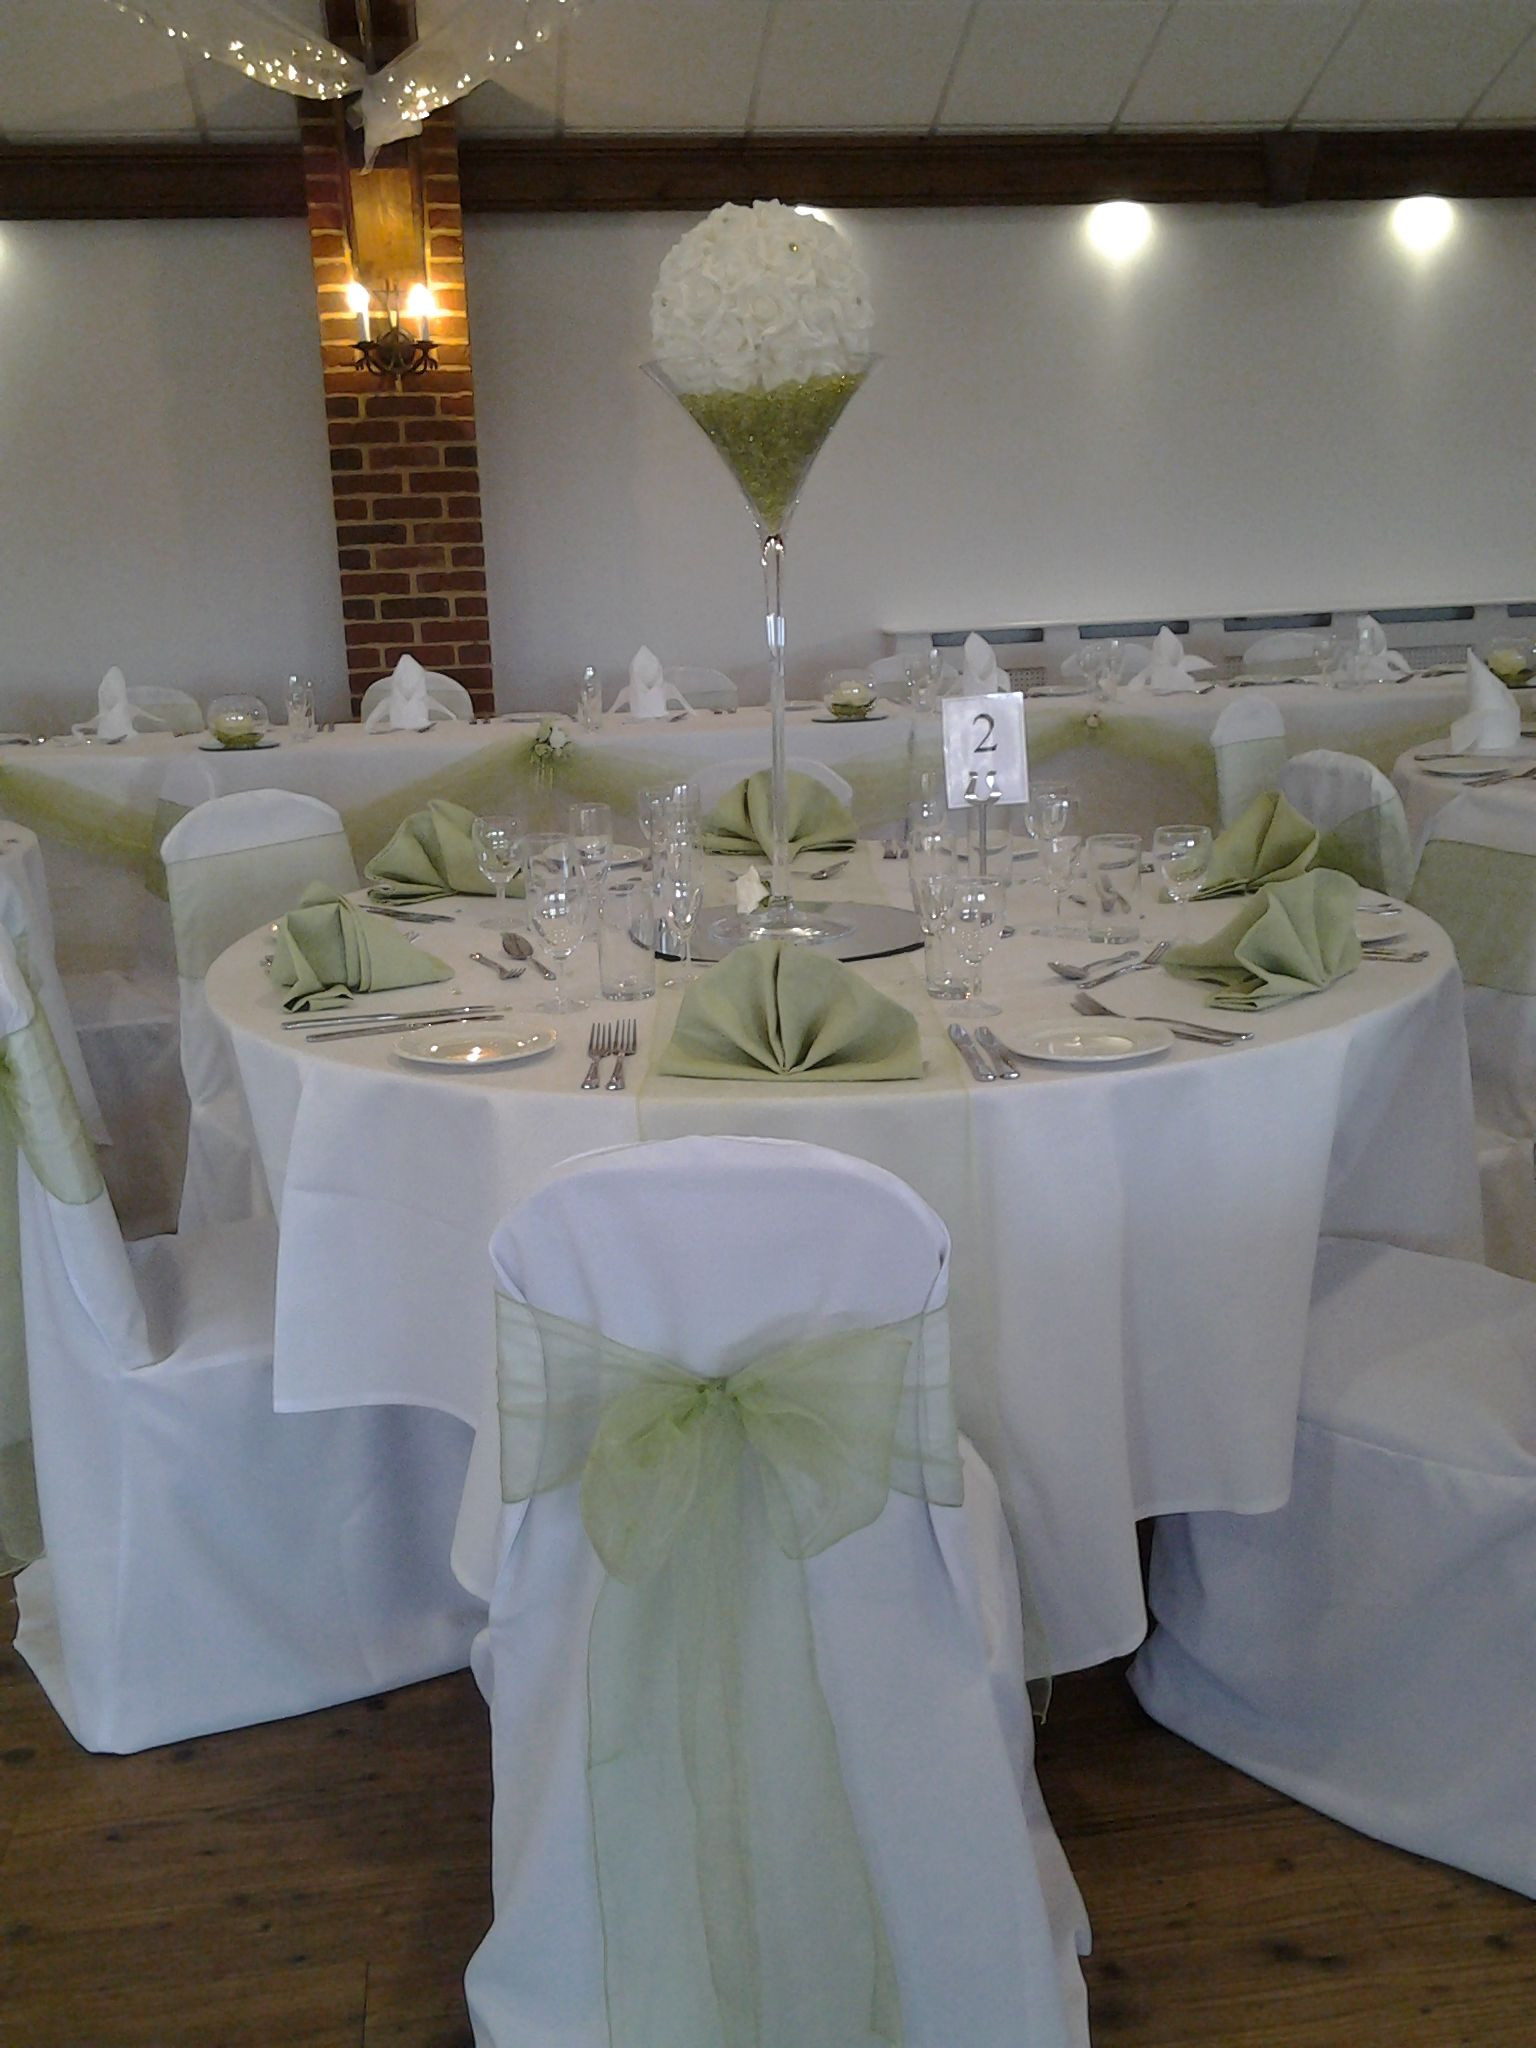 wedding cake vases of rose ball martini vase with coloured napkins available to hire in rose ball martini vase with coloured napkins available to hire